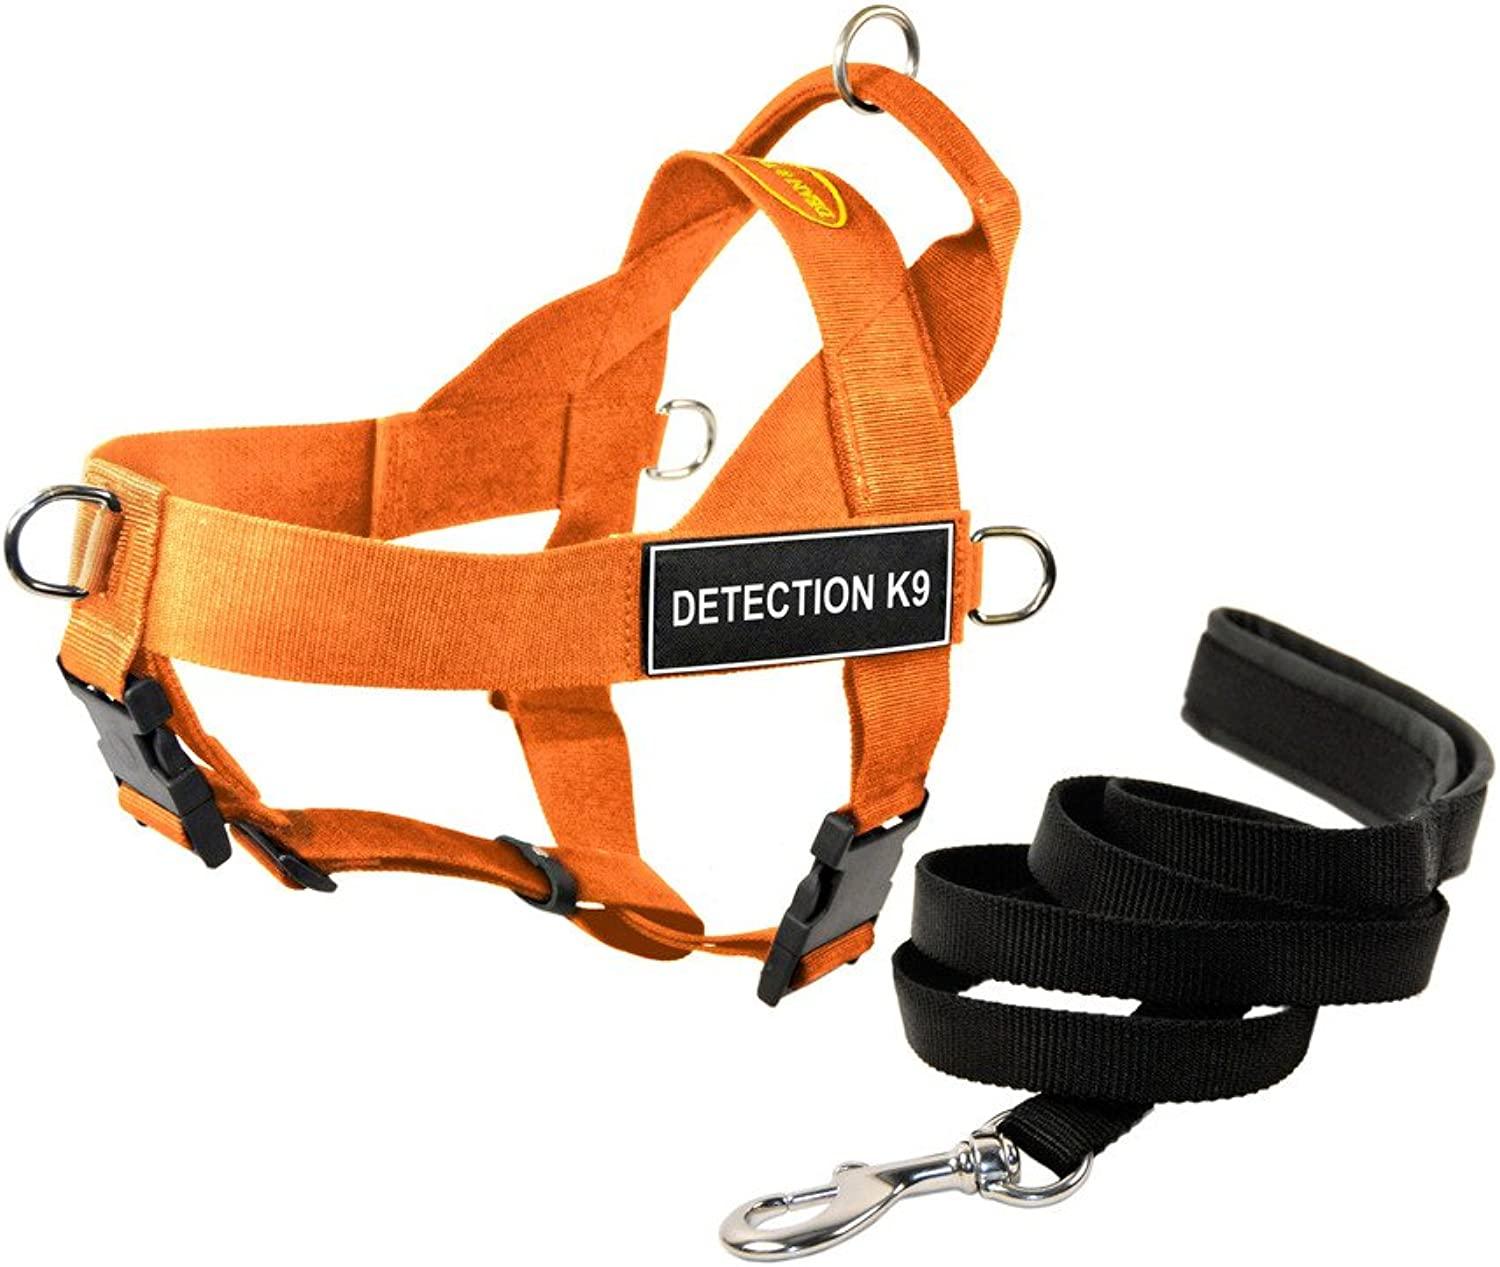 Dean & Tyler DT Universal No Pull Dog Harness with Detection K9 Patches and Puppy Leash, orange, XLarge